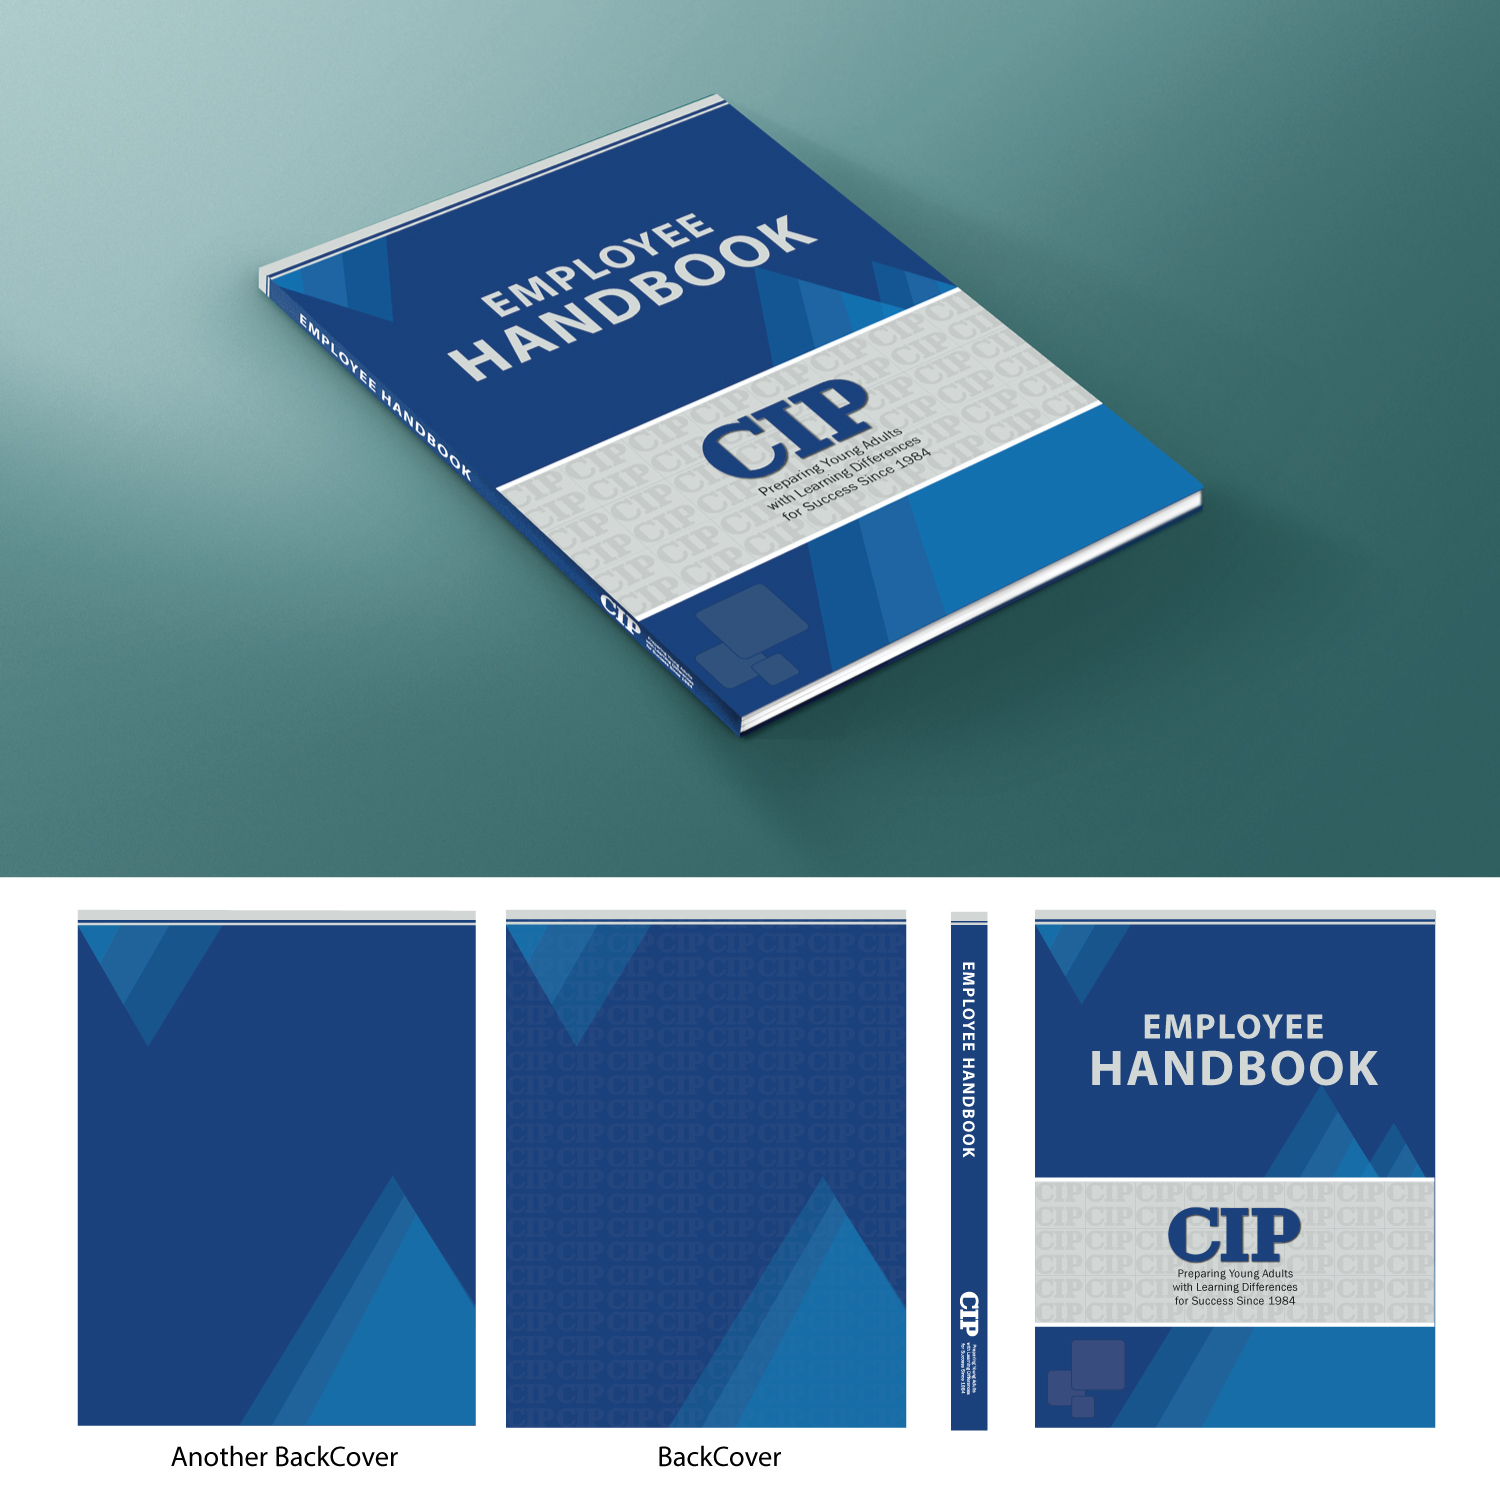 employee handbook cover design template modern bold education book cover design for college